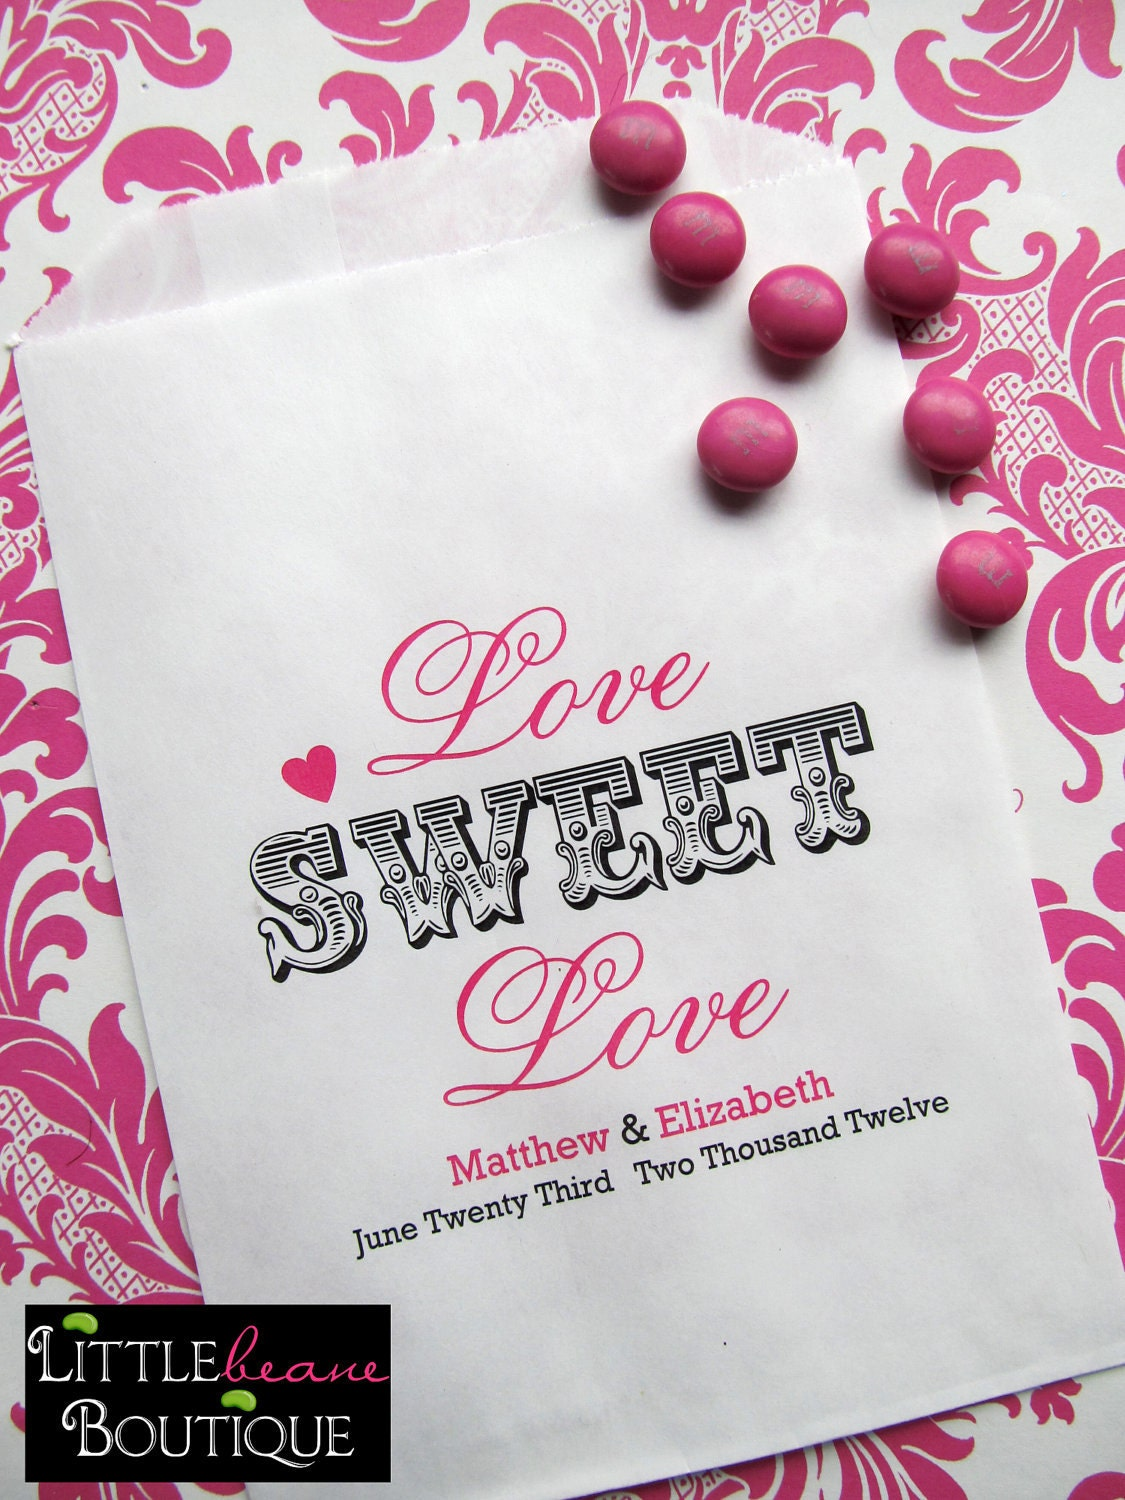 Wedding Favor Bags For Candy : Wedding Candy favor Bags Love Sweet Love favor bags Bridal